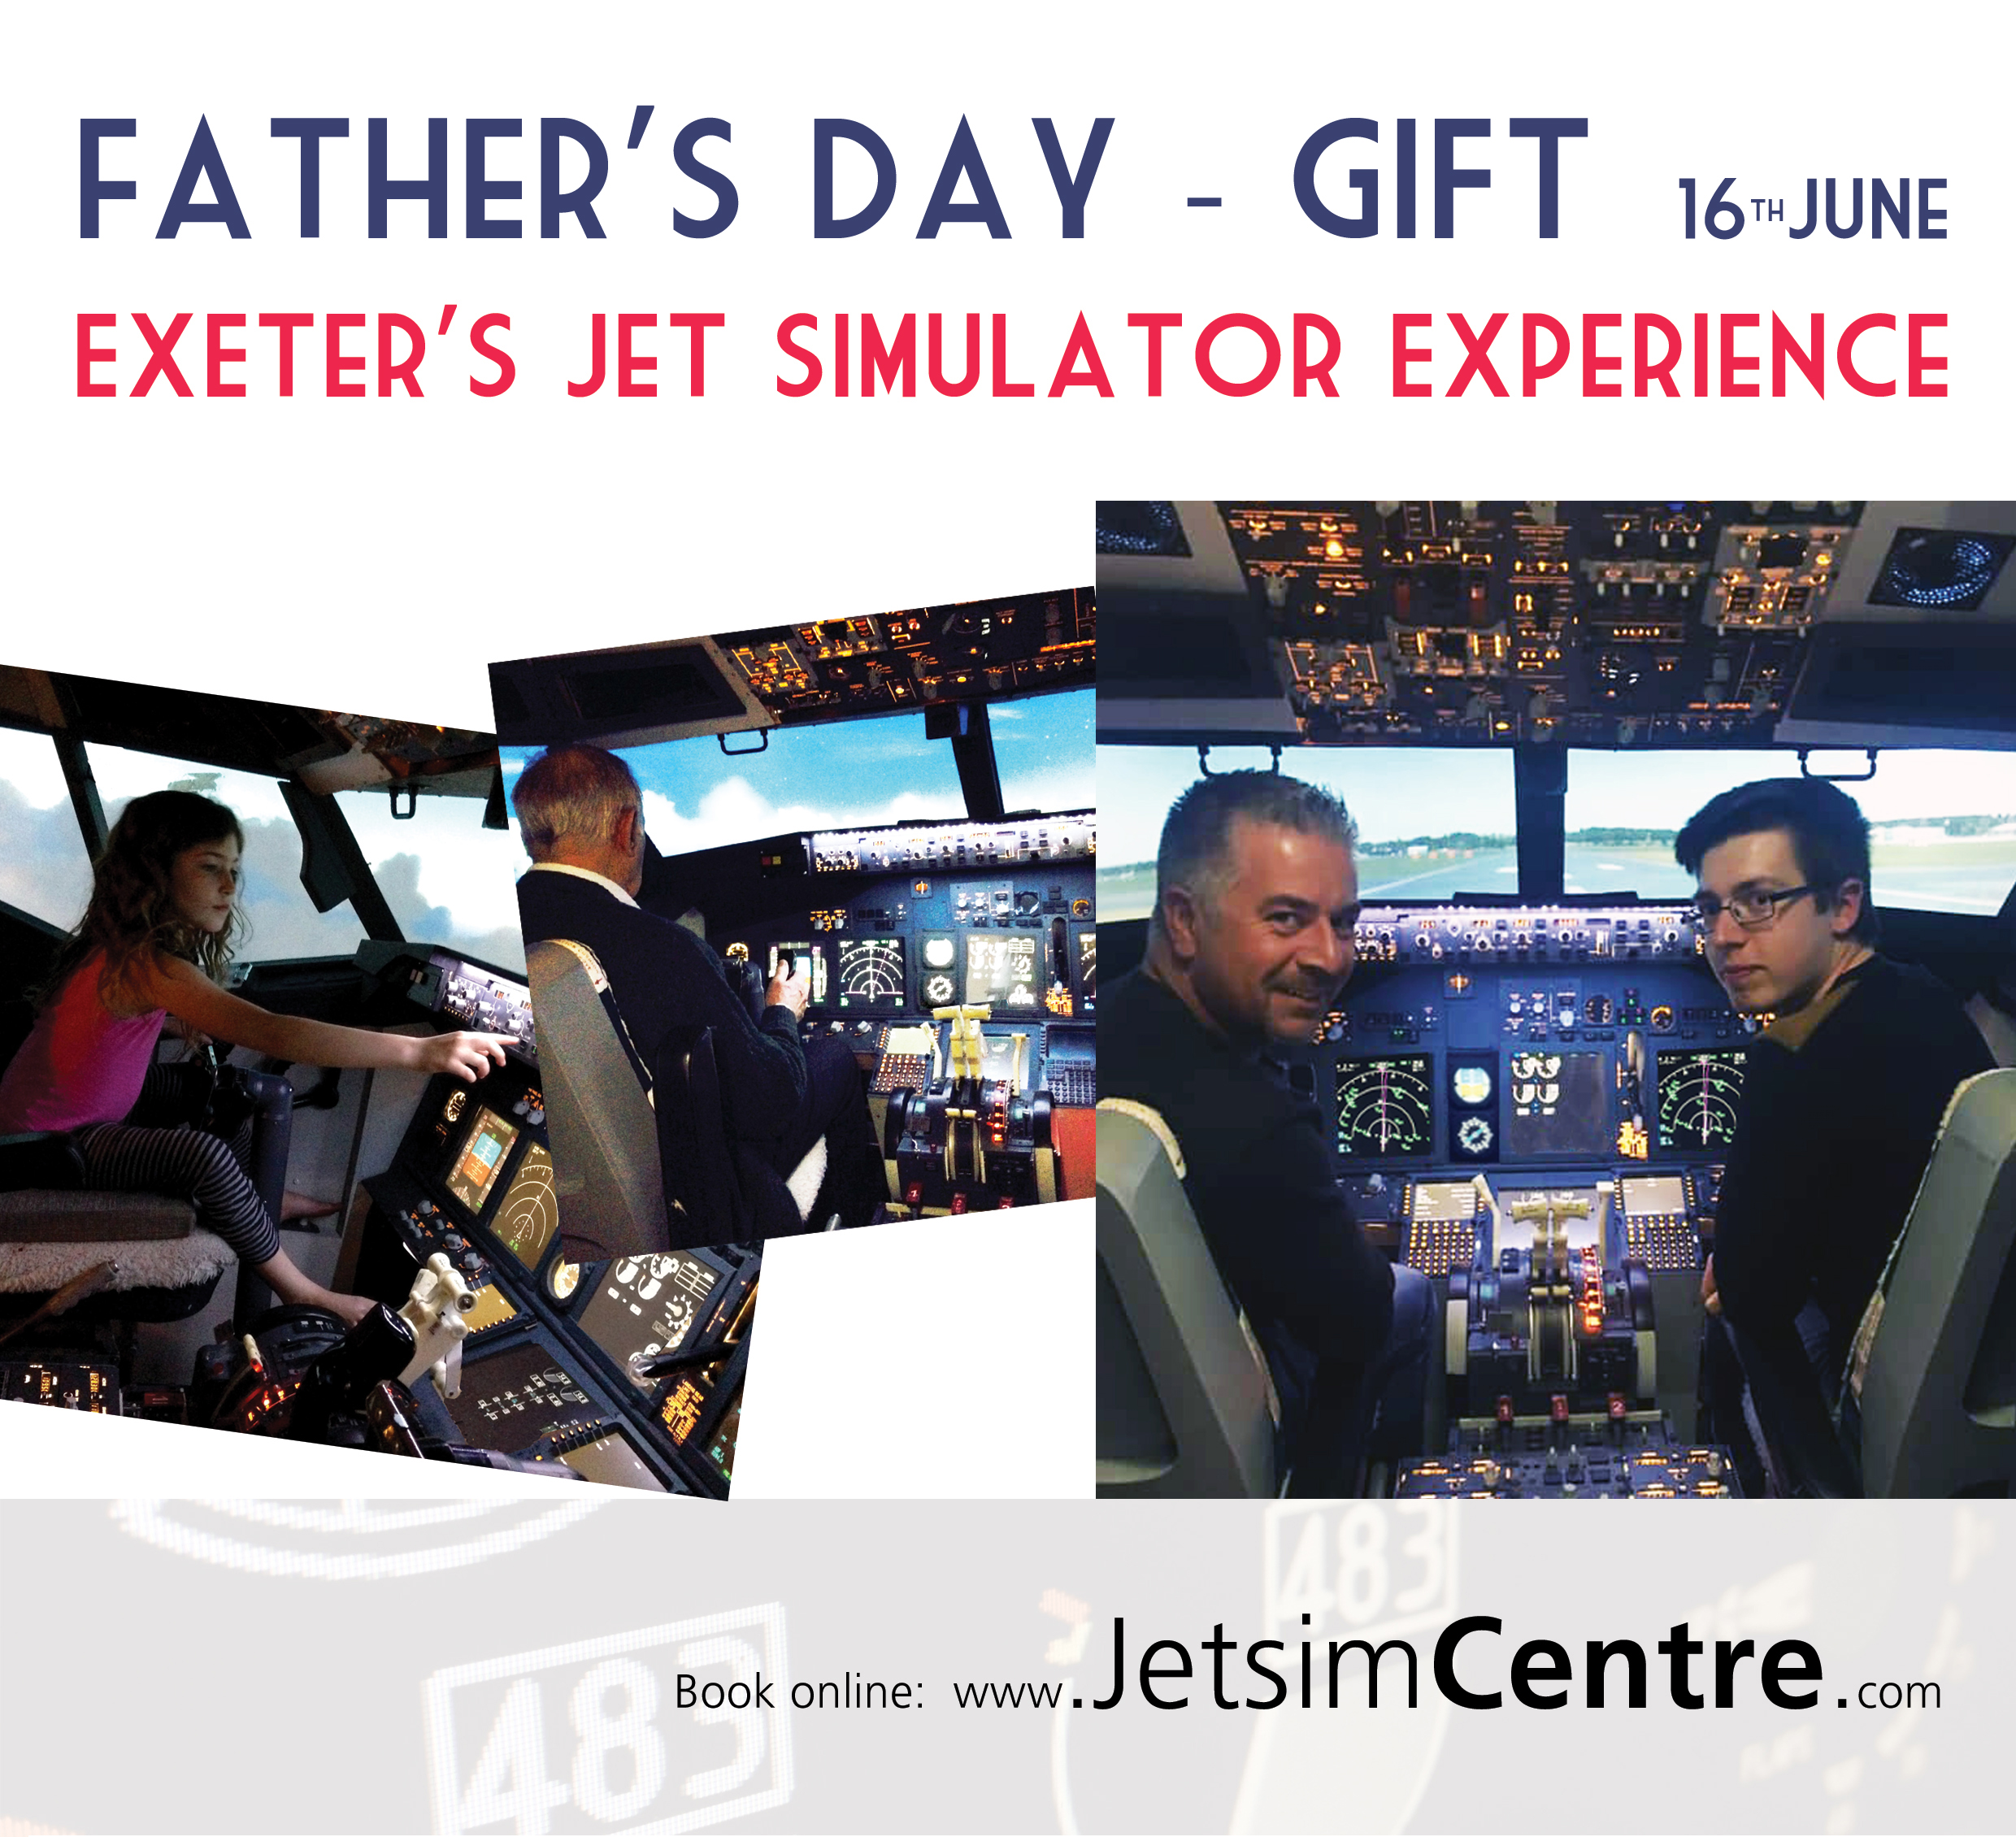 Looking for an awesome present? - Sit back, relax - we've got it covered with our Airline Pilot Jet Experience from £89Gift vouchers available https://www.jetsimcentre.com/book-a-flight